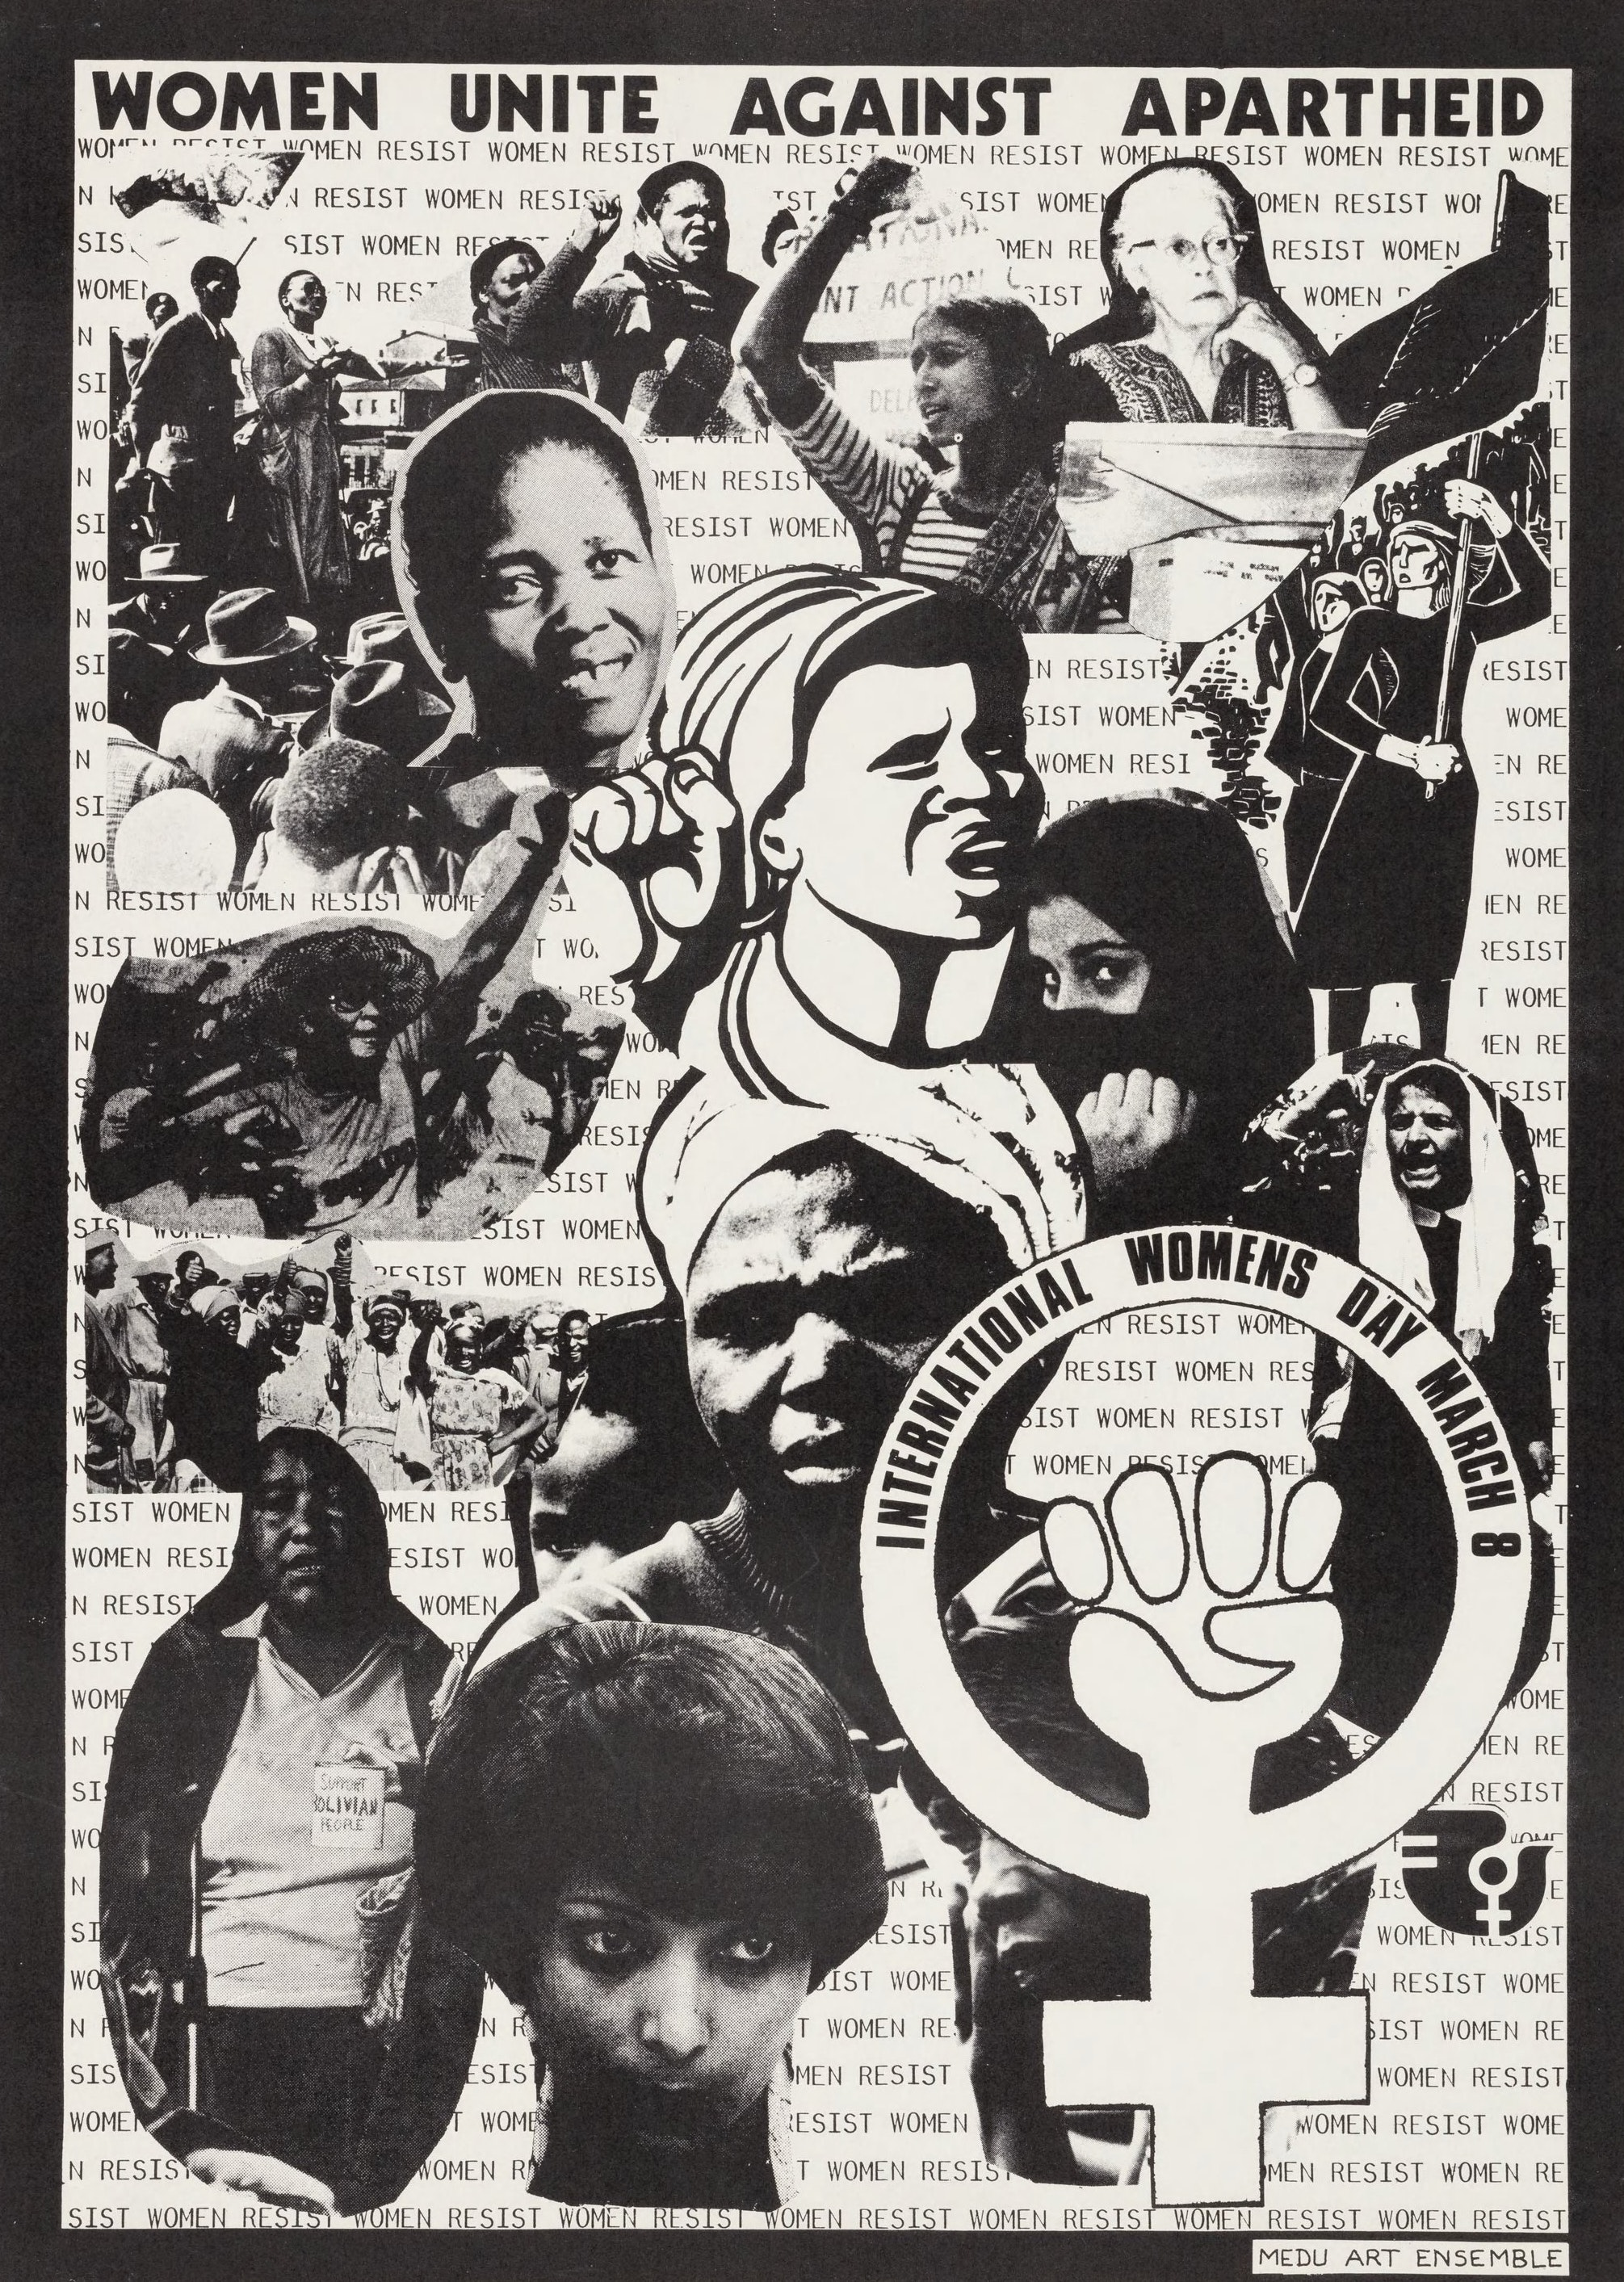 """A black and white collaged poster with images of women and the words """"Women Unite against Apartheid"""" at the top of the poster."""